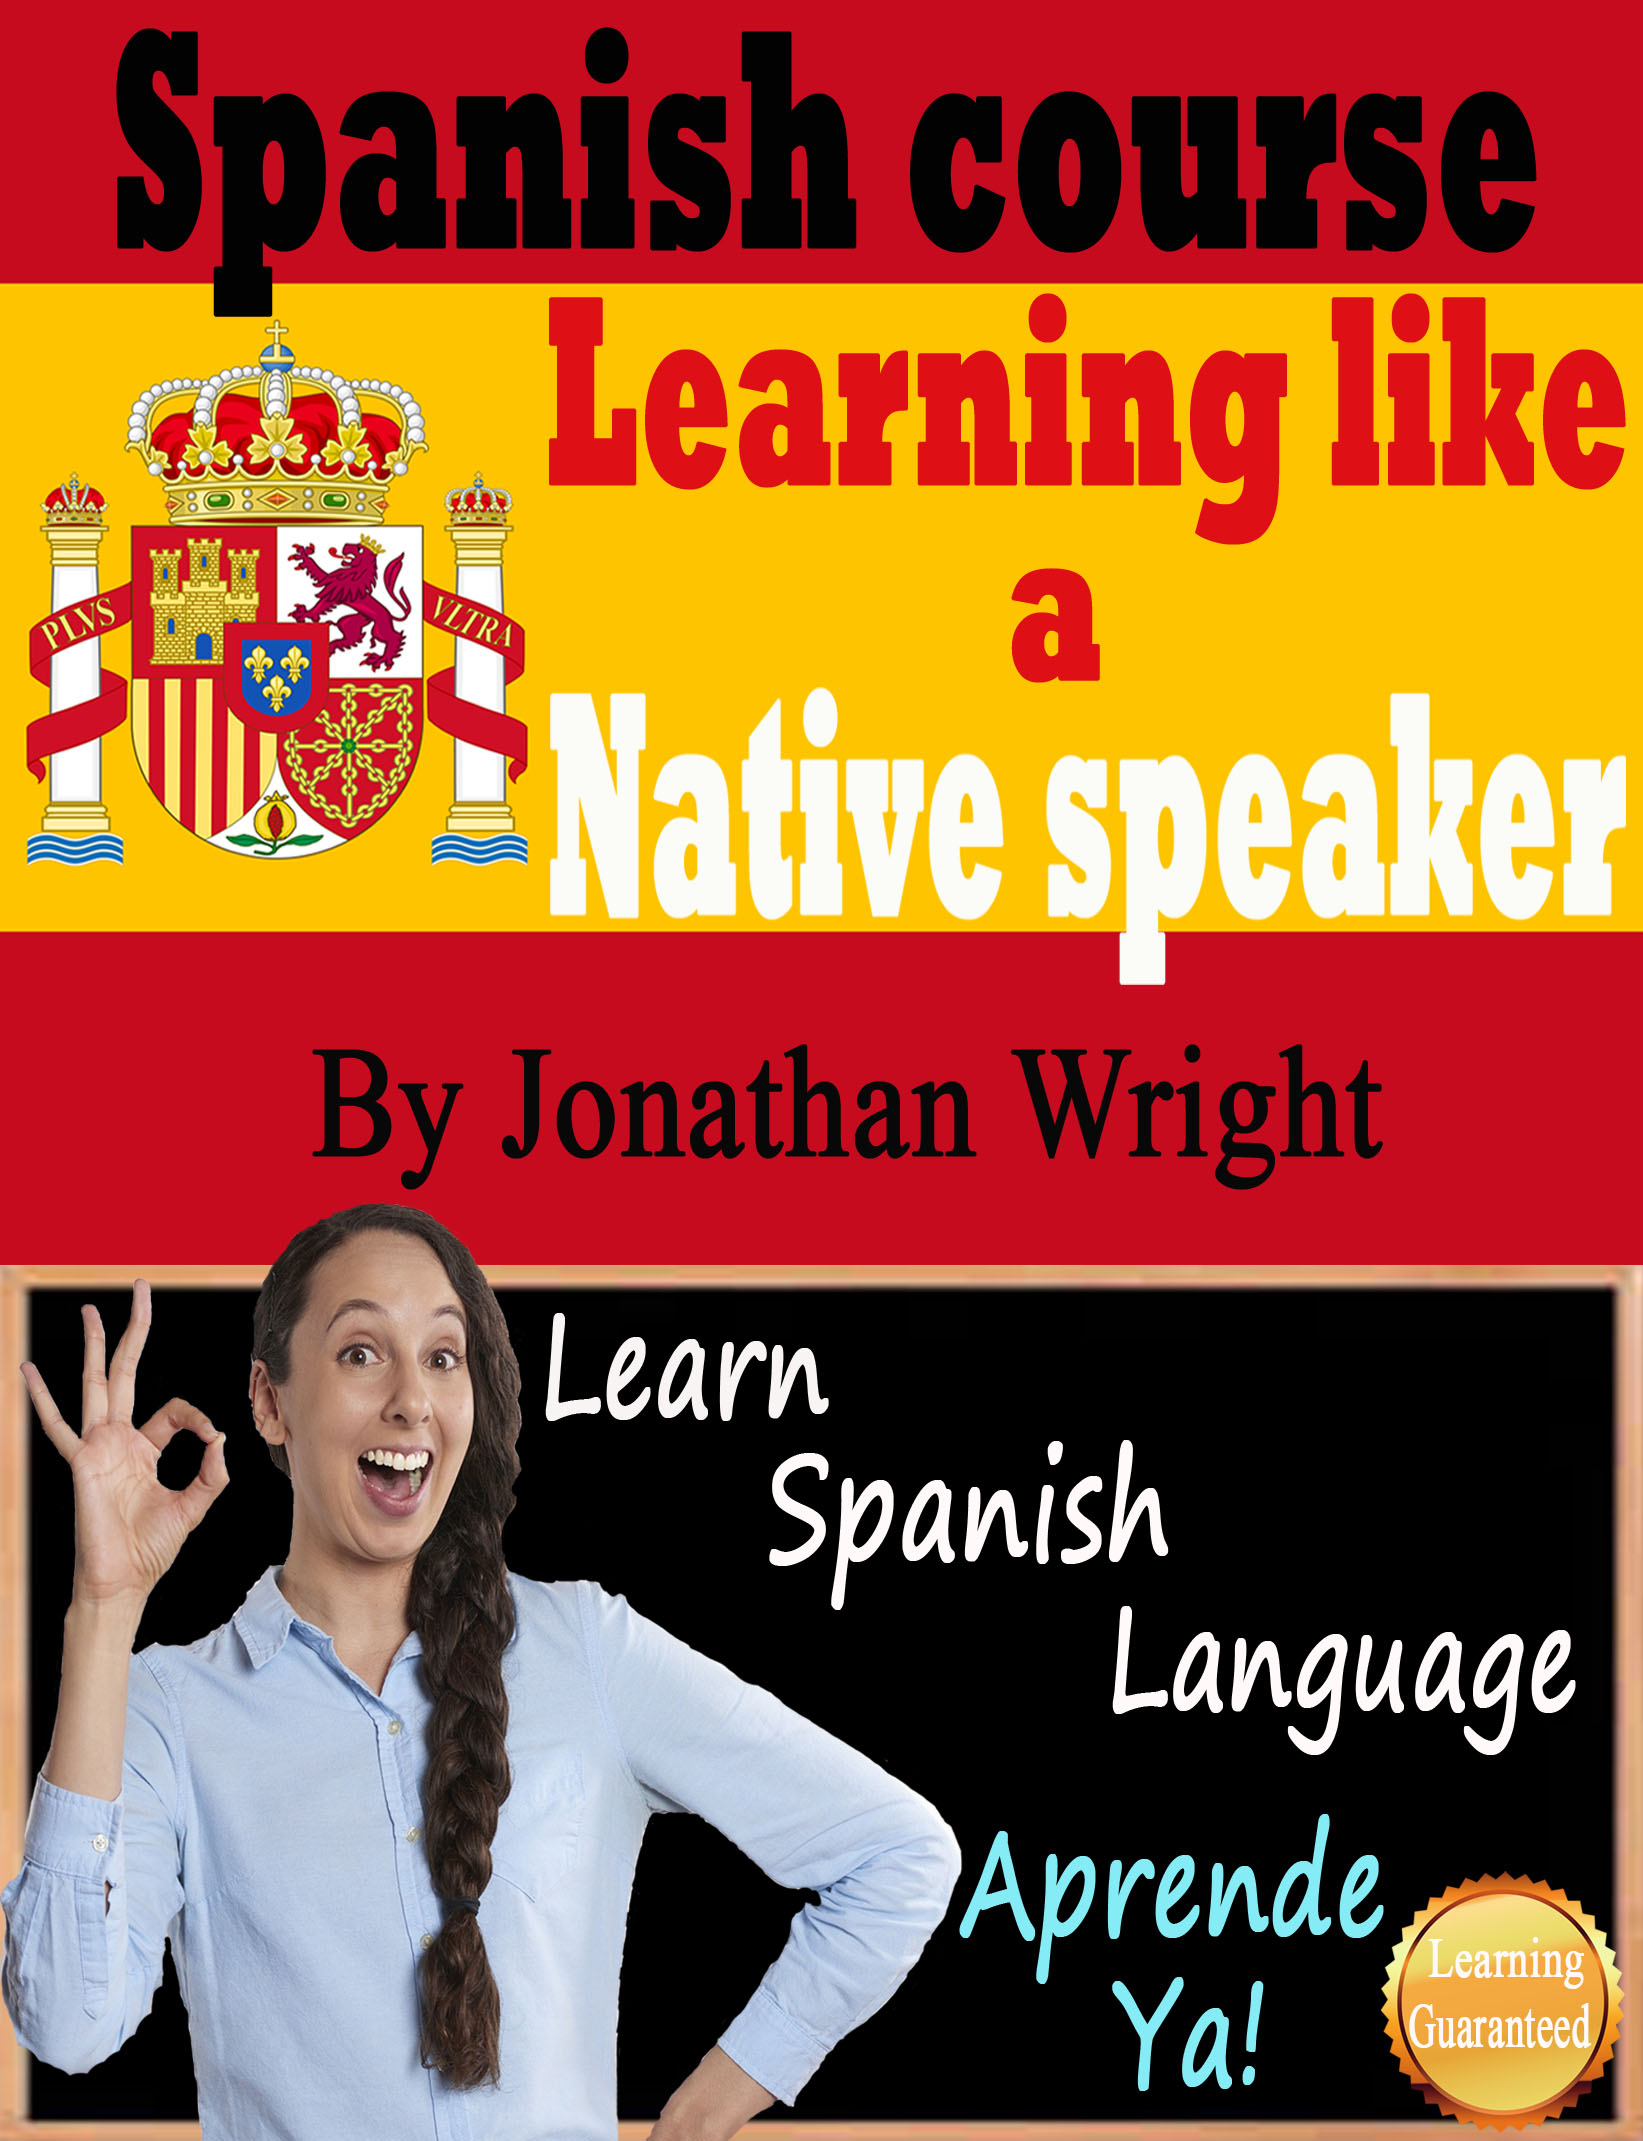 Spanish course: Learning like a native speaker , an Ebook by Jonathan Wright